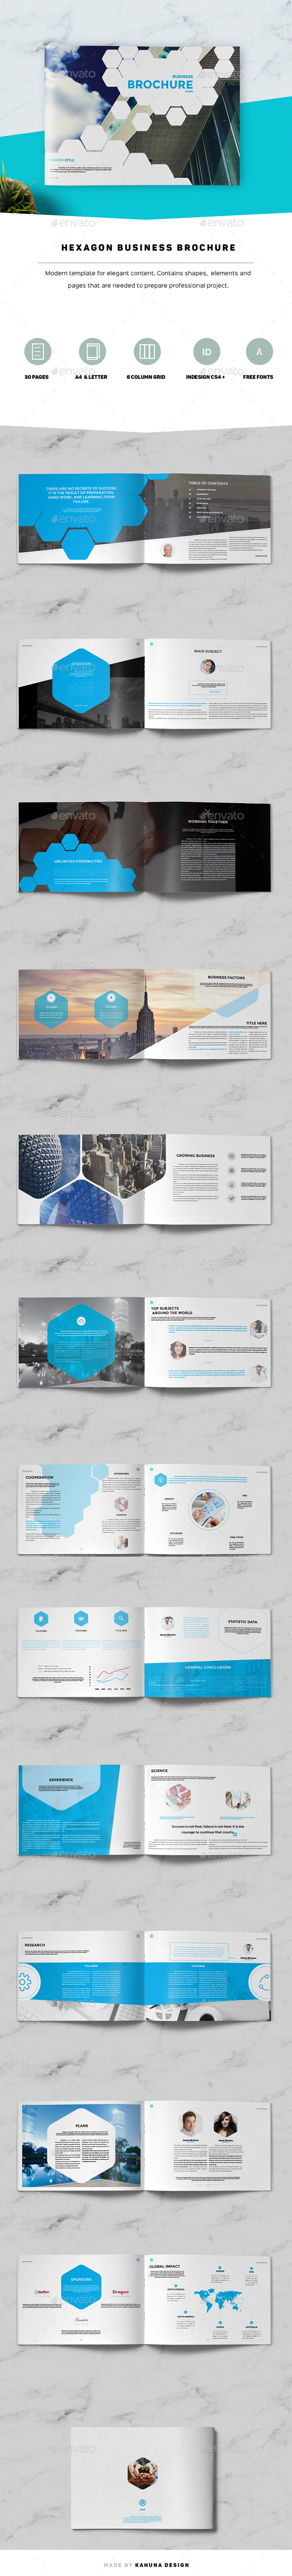 Hexagon Business Brochure - Corporate Brochures